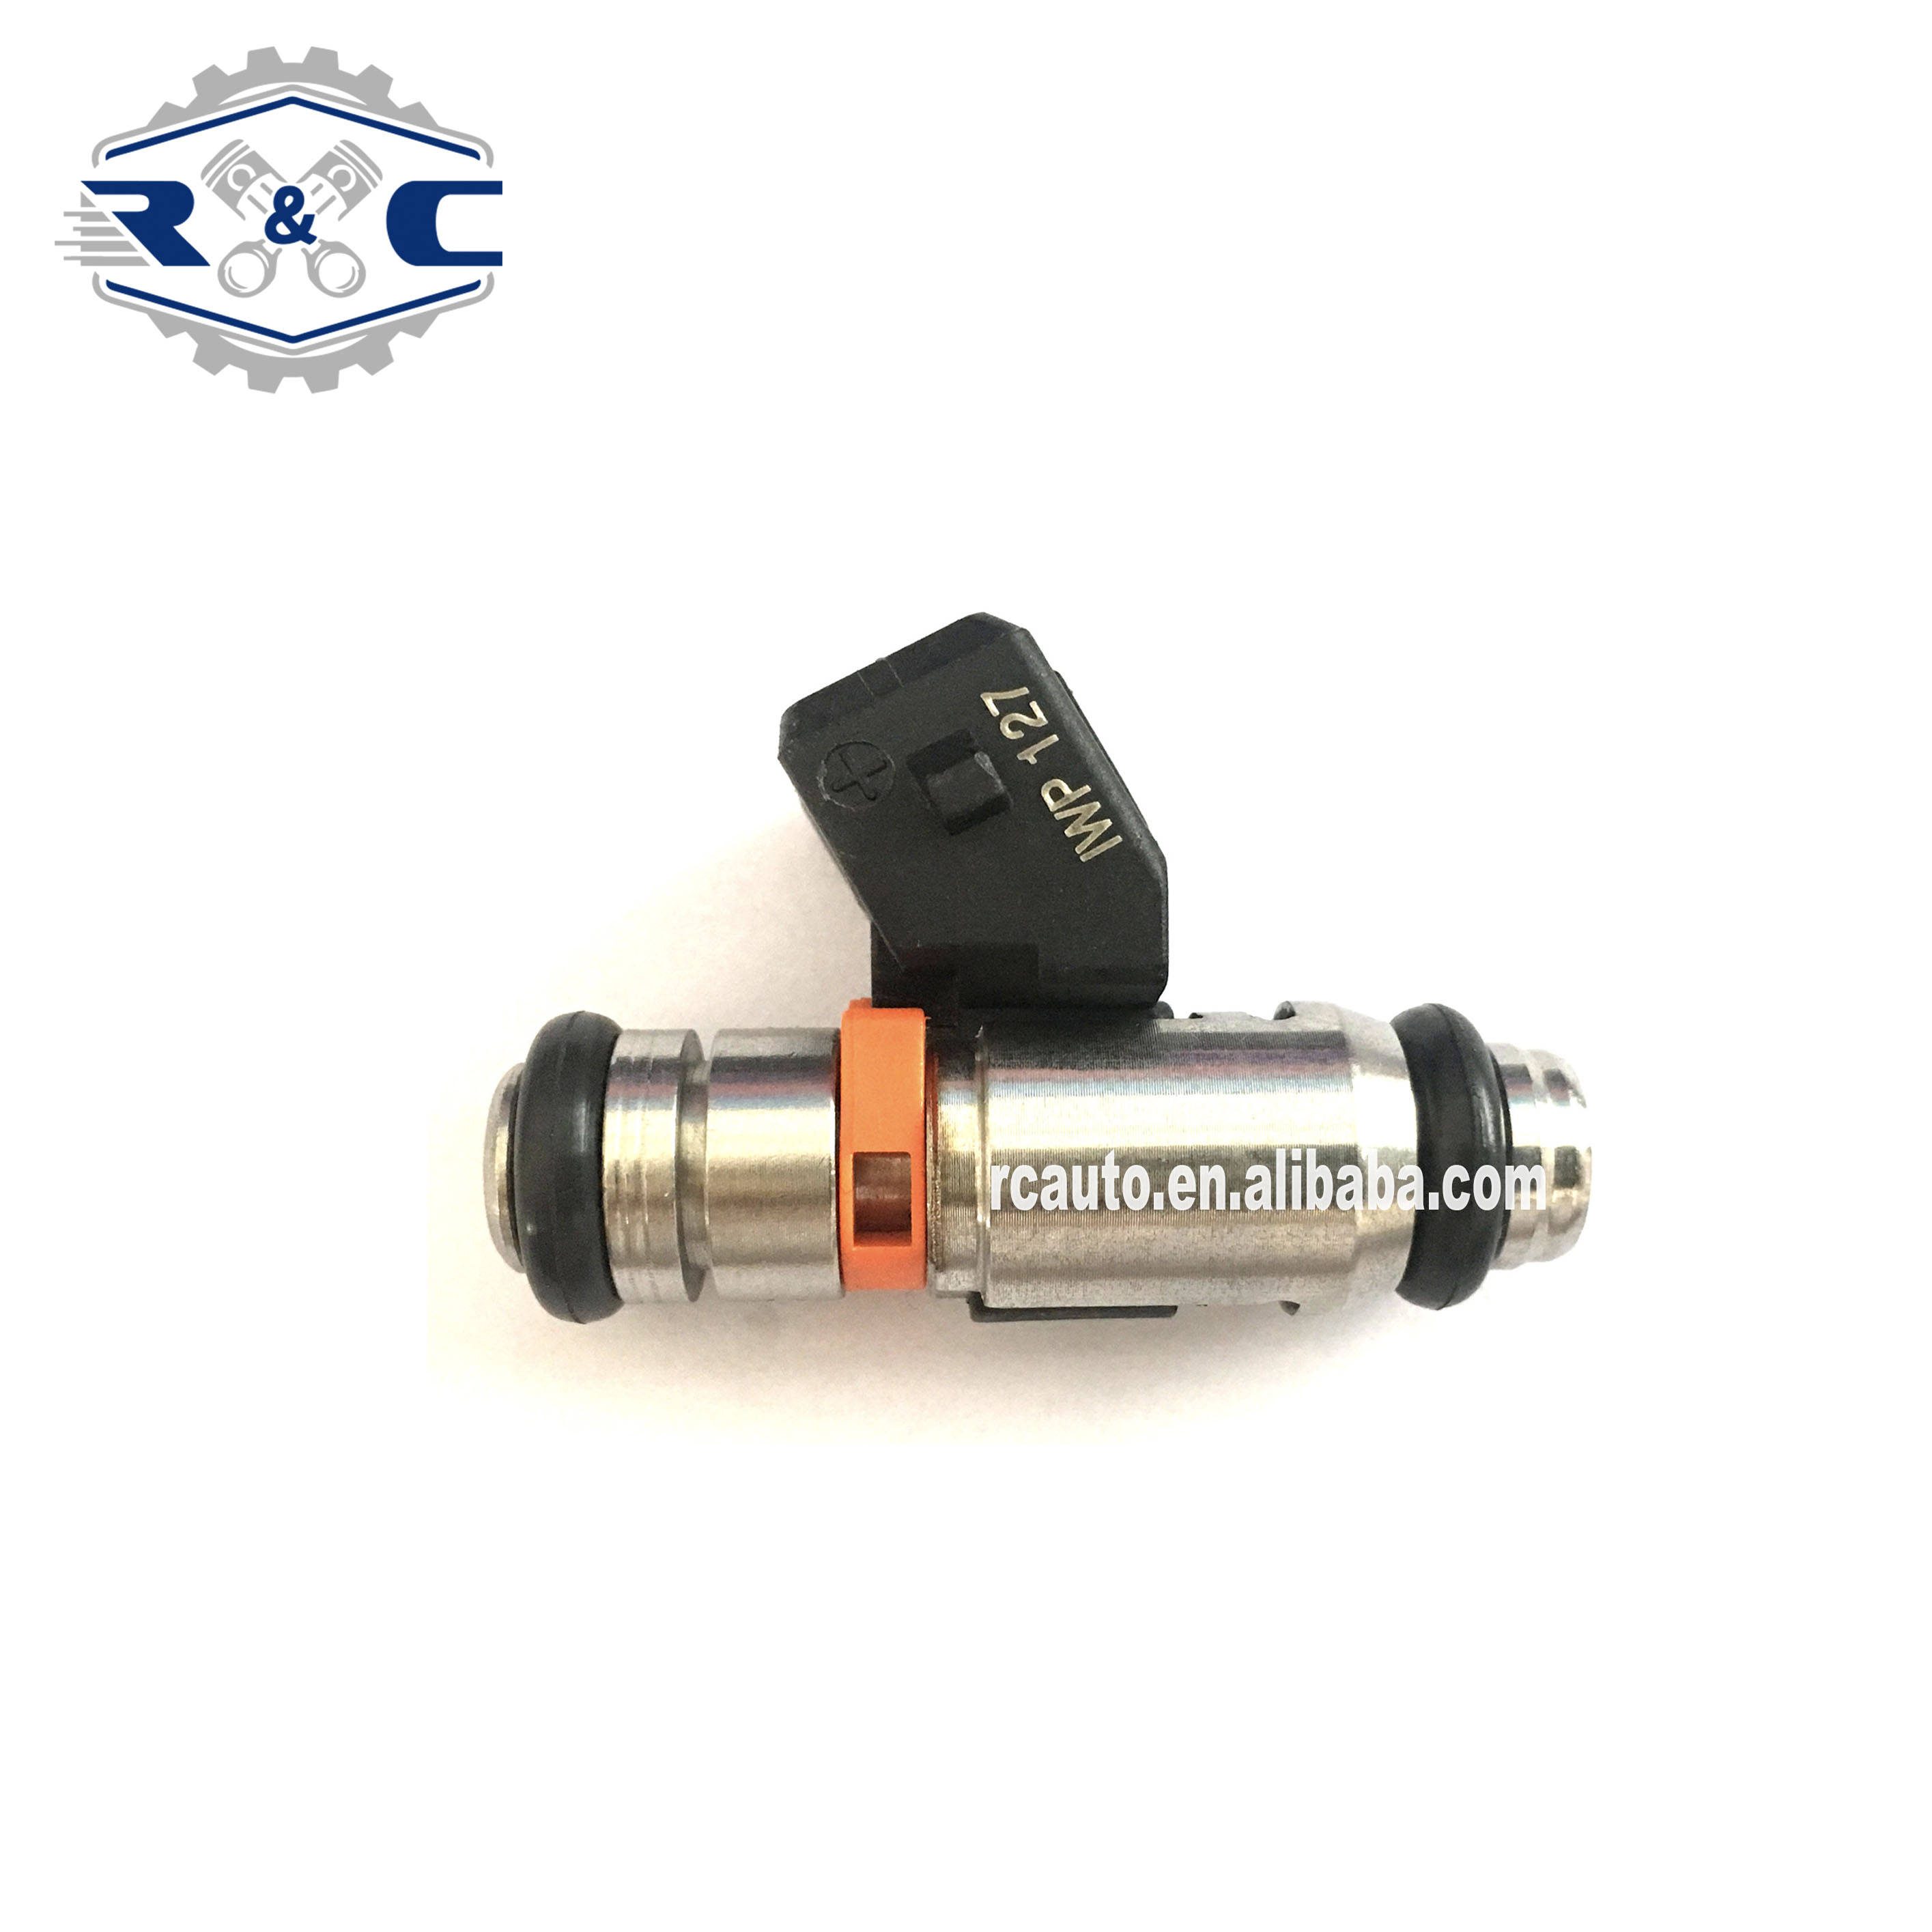 R&amp;<strong>C</strong> High Quality Nozzle IWP <strong>127</strong> 50103302 professional tested For Ford Fiesta Ecosport Gasoline Fuel Injection